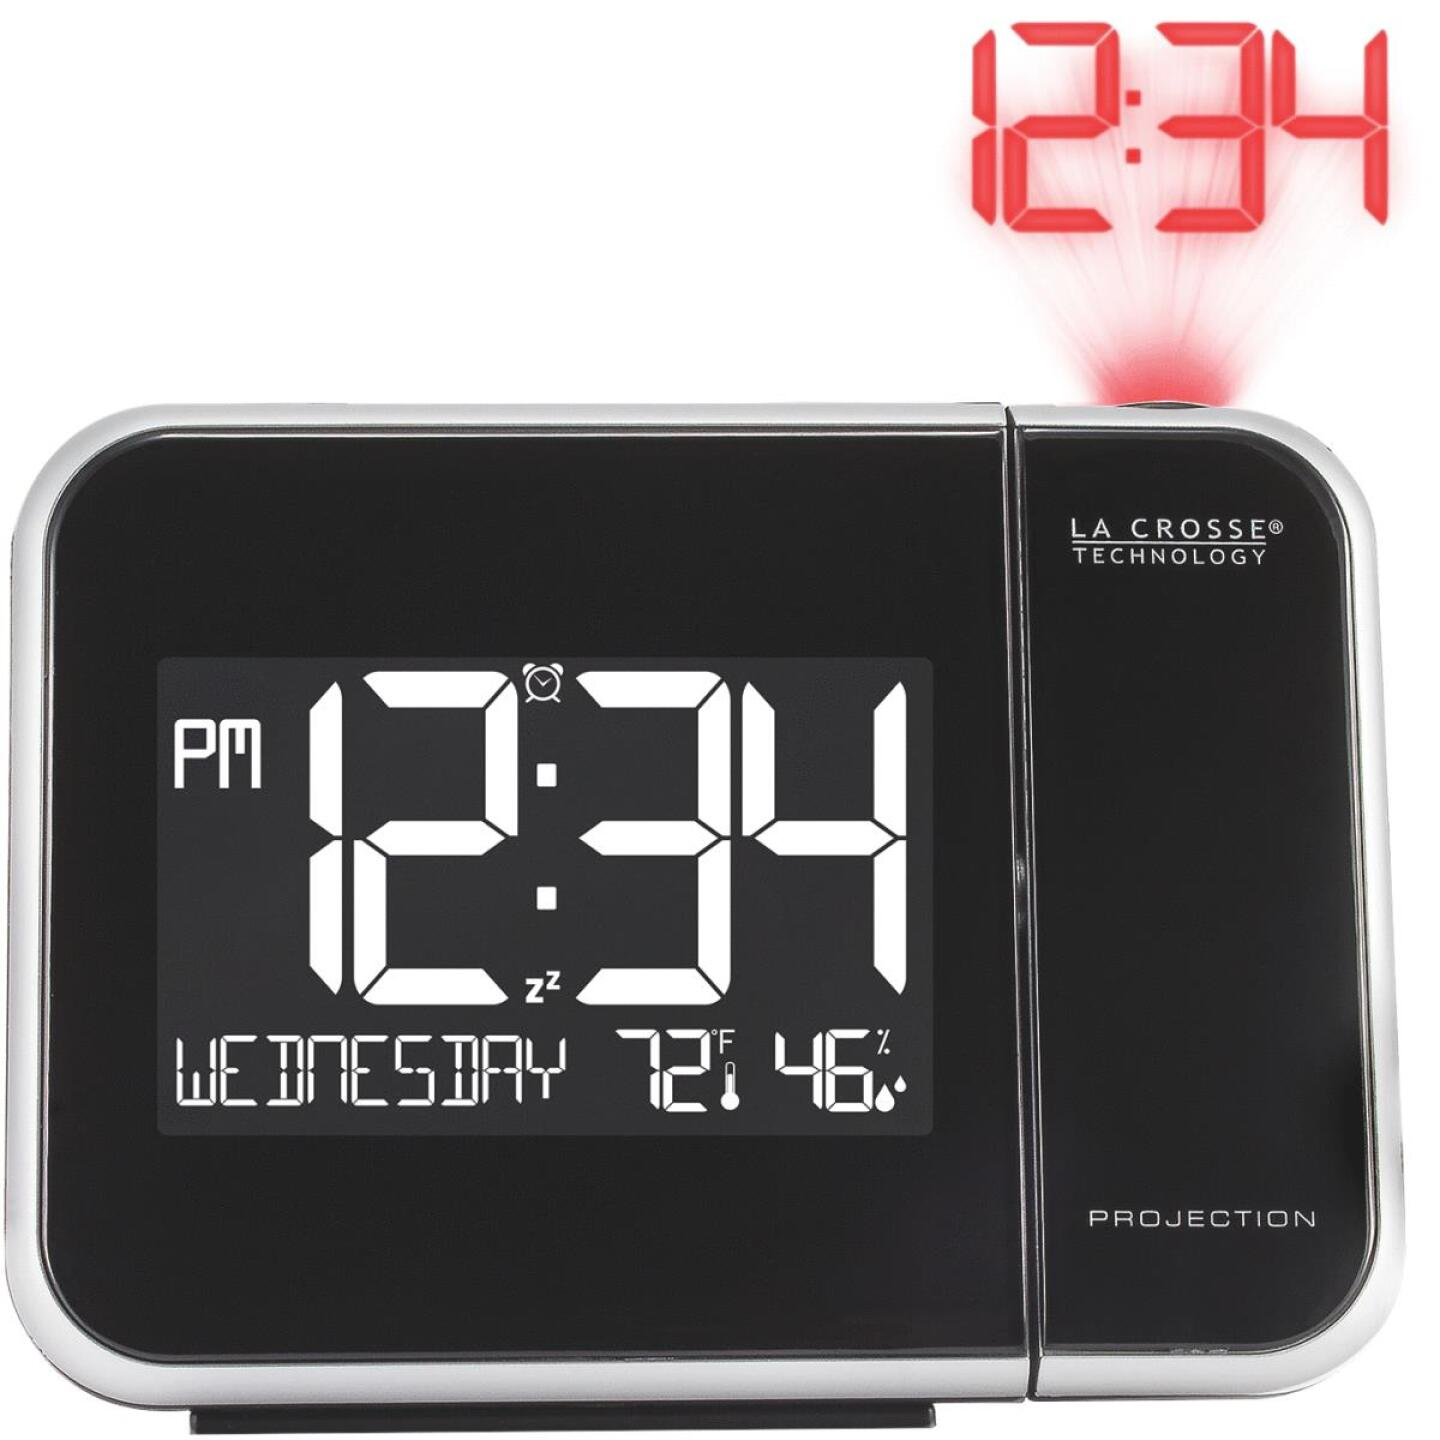 La Crosse Technology Projection Electric Alarm Clock Image 1